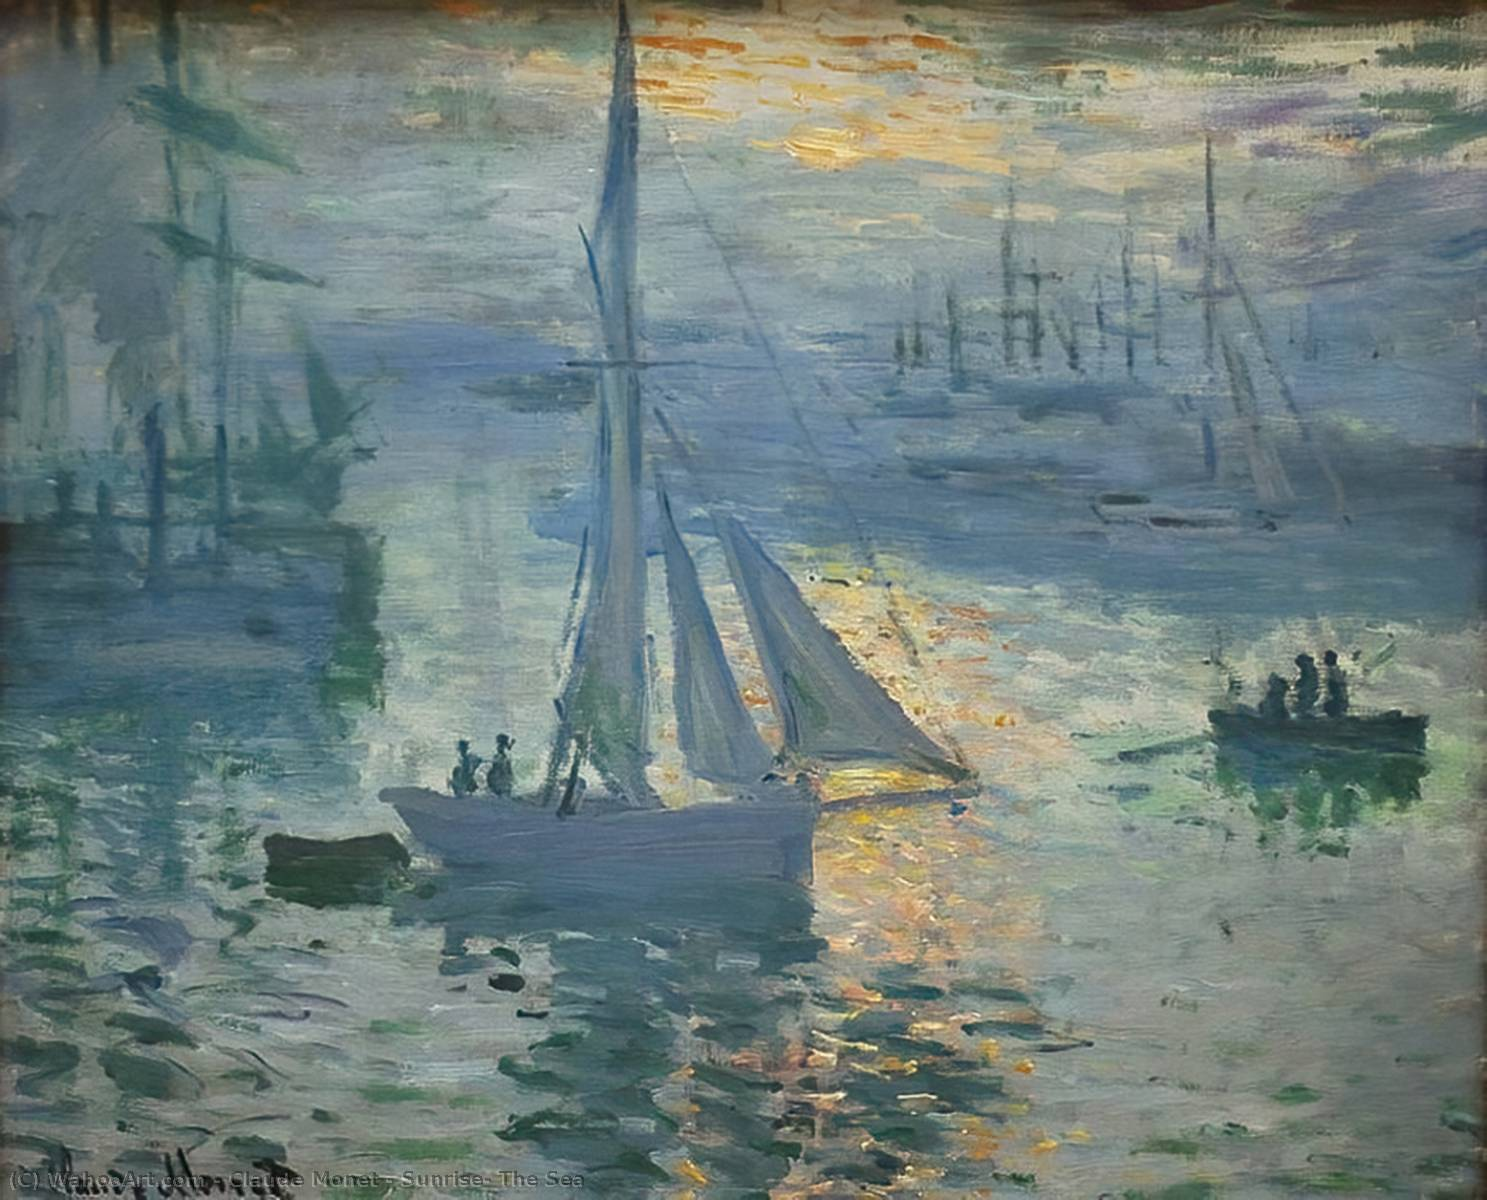 Achat Reproductions De Qualité Musée | lever du soleil la  mer  de Claude Monet | Most-Famous-Paintings.com